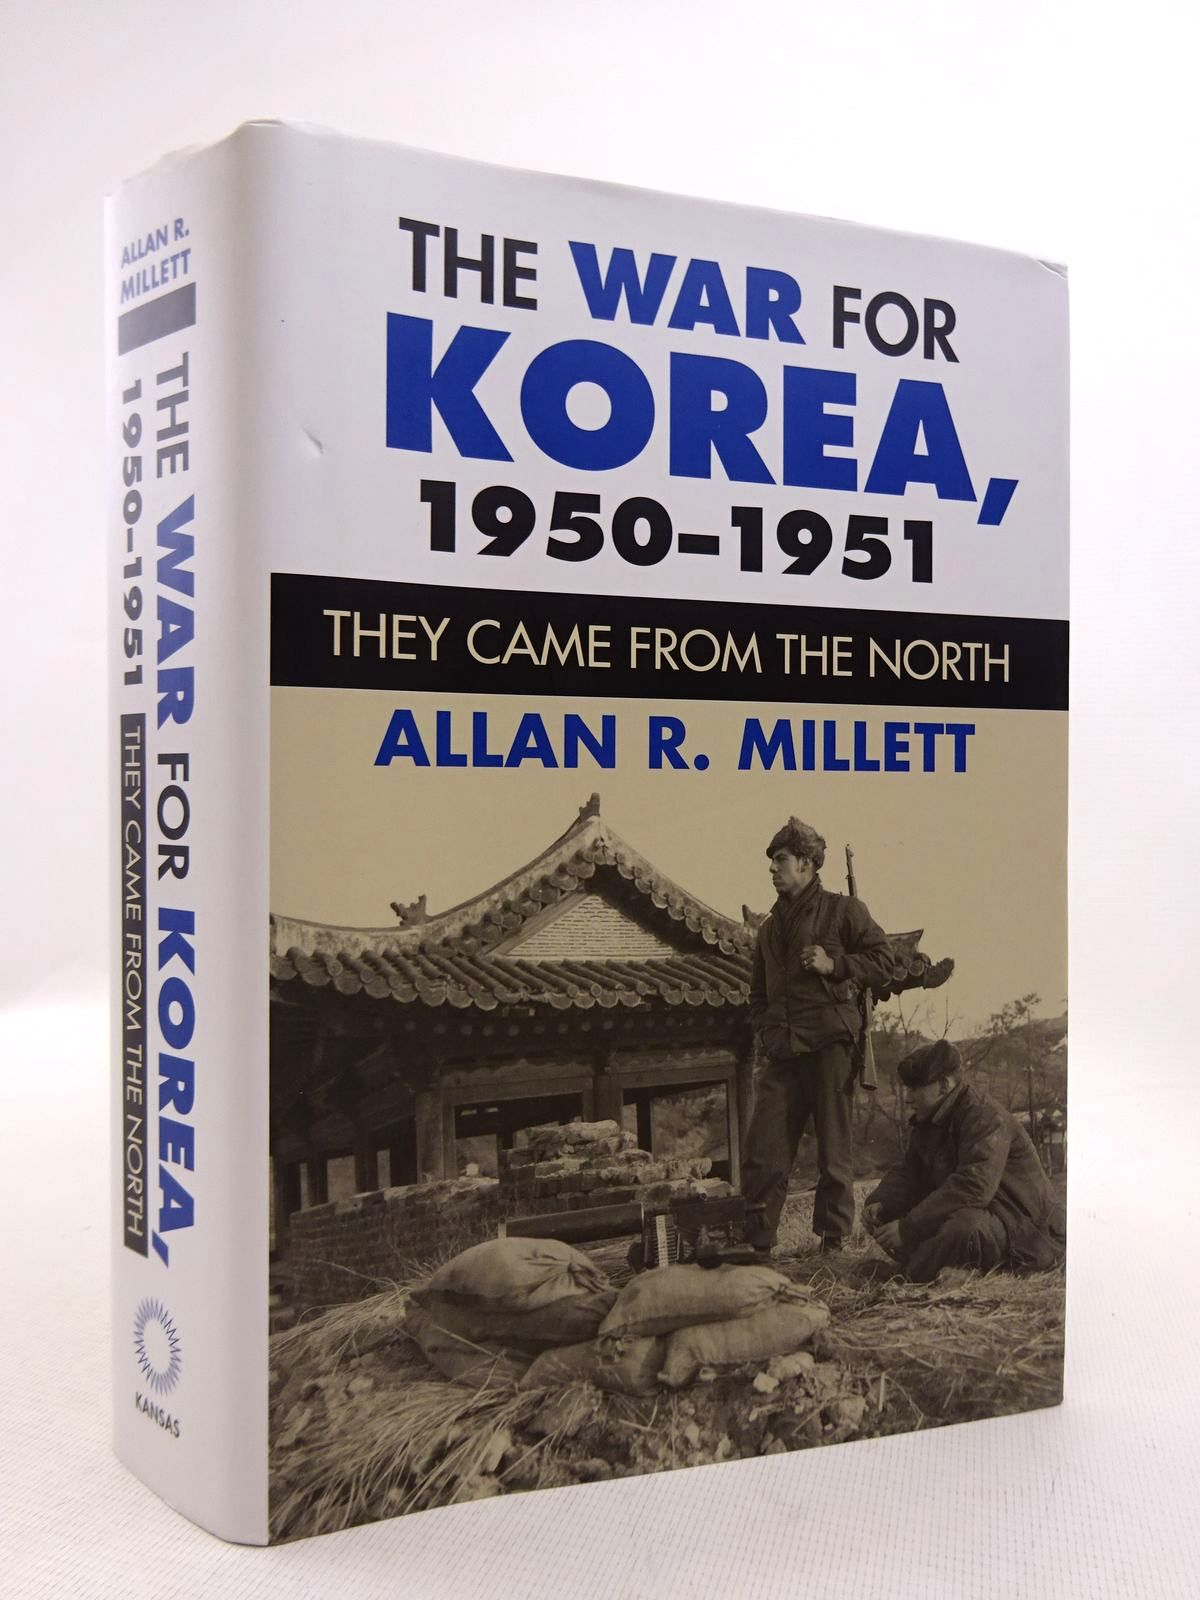 Photo of THE WAR FOR KOREA, 1950-1951 THEY CAME FROM THE NORTH written by Millett, Allan R. published by University Press Of Kansas (STOCK CODE: 1816830)  for sale by Stella & Rose's Books